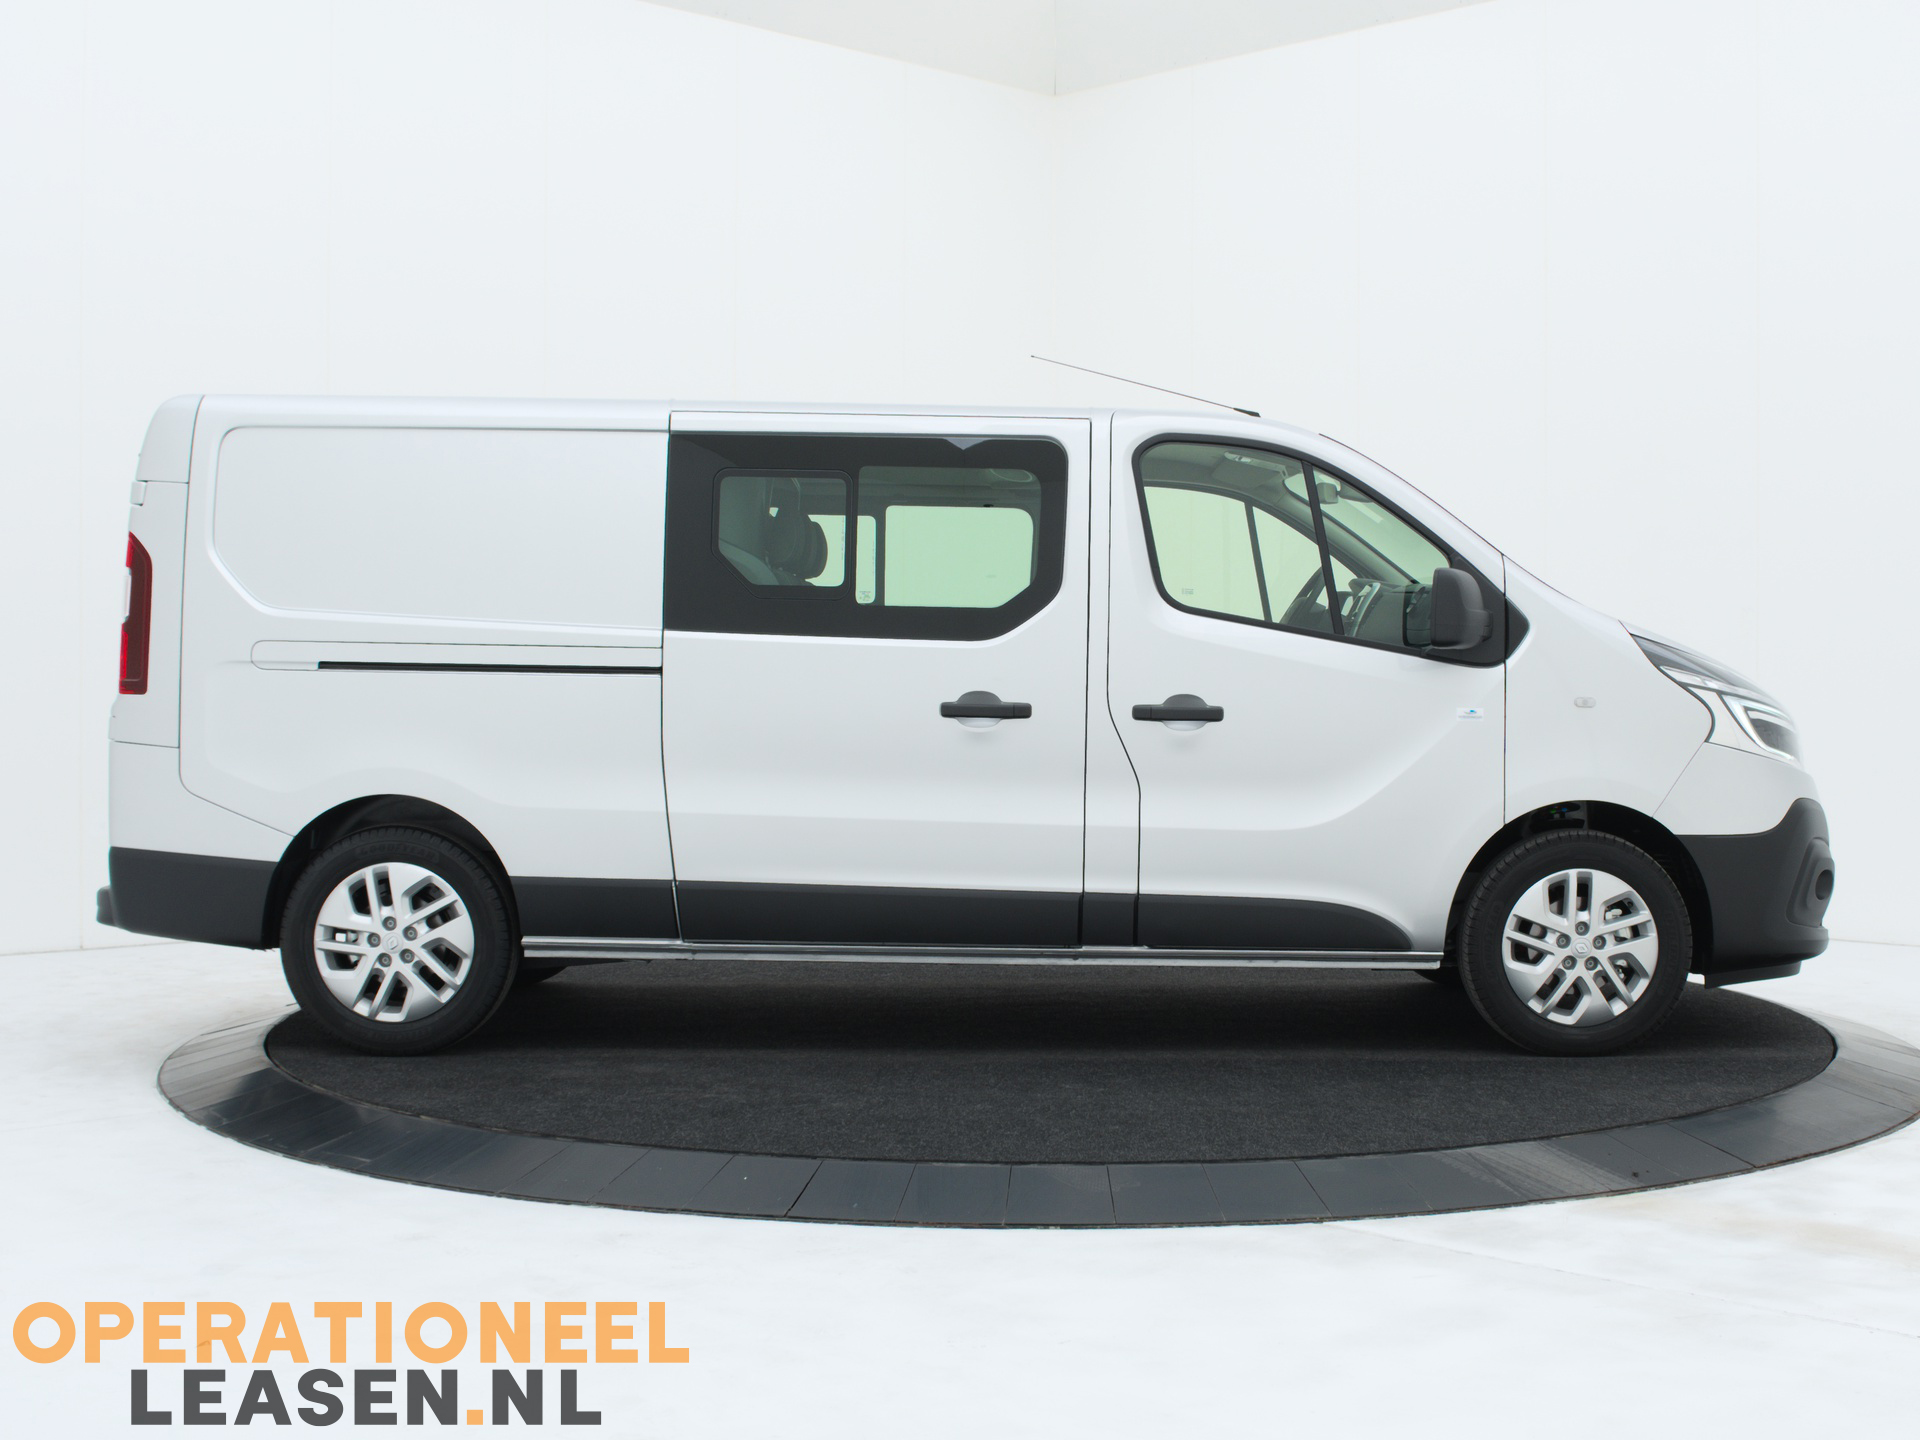 Operational lease Renault master traffic-13